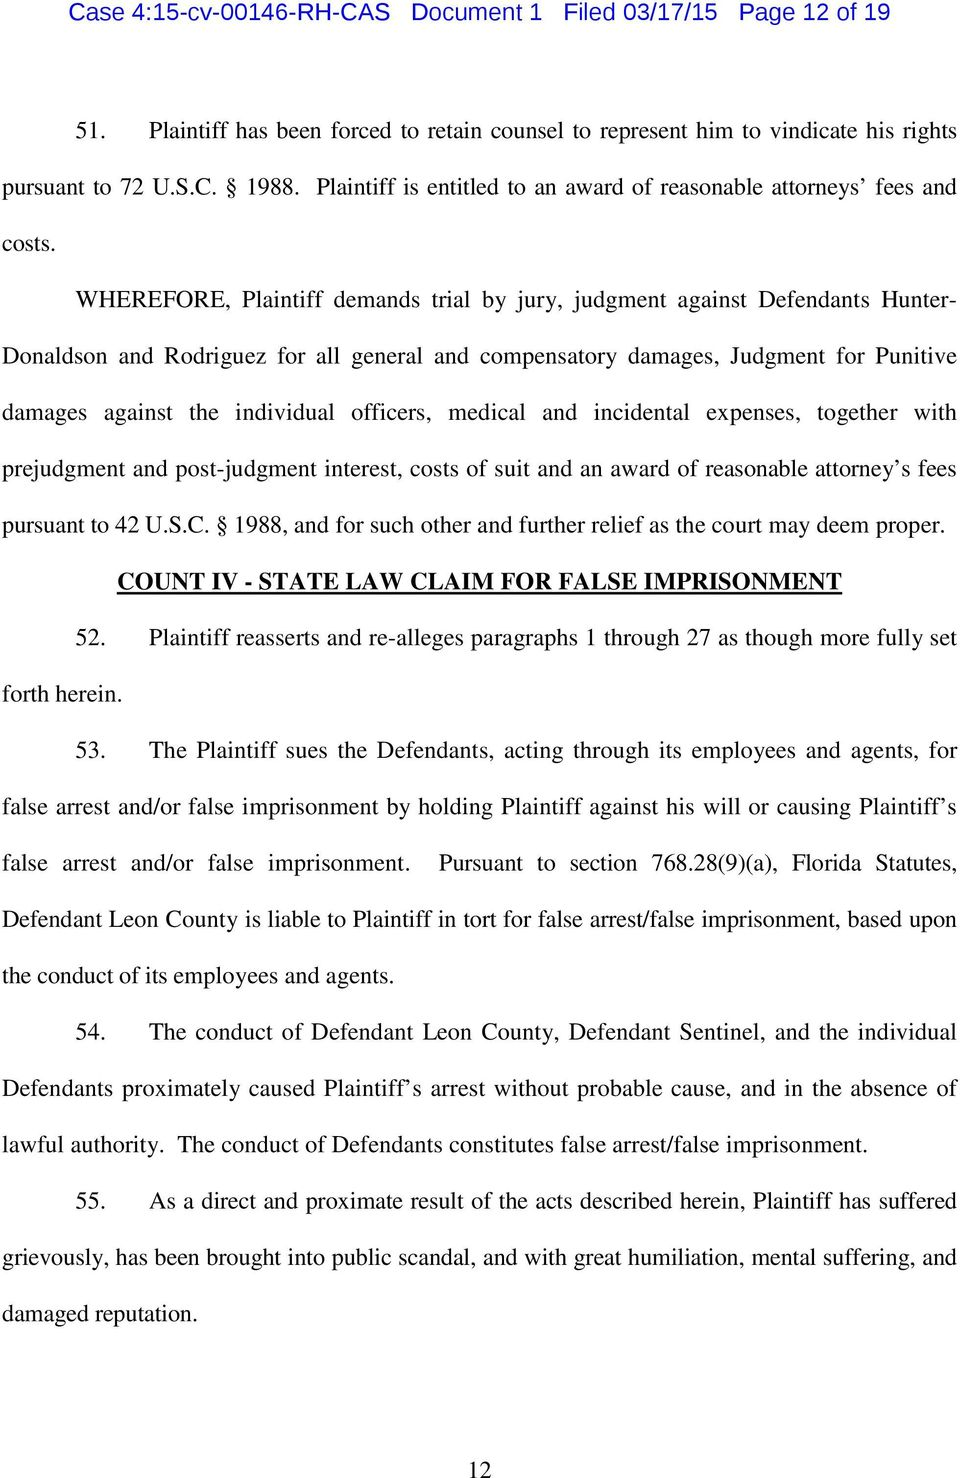 WHEREFORE, Plaintiff demands trial by jury, judgment against Defendants Hunter- Donaldson and Rodriguez for all general and compensatory damages, Judgment for Punitive damages against the individual